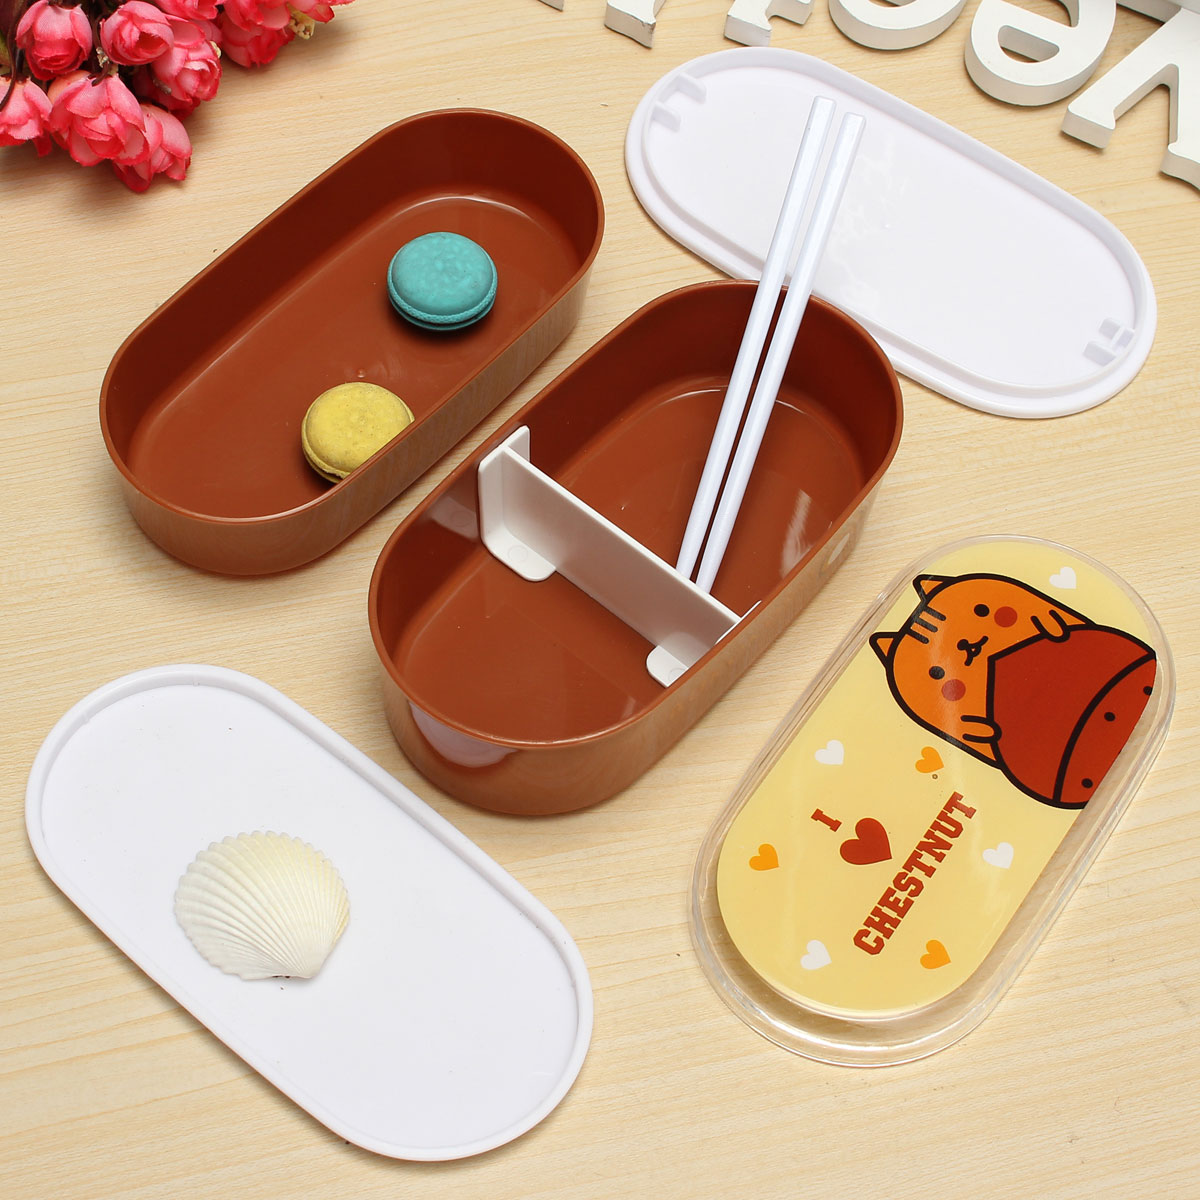 student cartoon lunch box food container storage portable bento box chopsticks lazada singapore. Black Bedroom Furniture Sets. Home Design Ideas